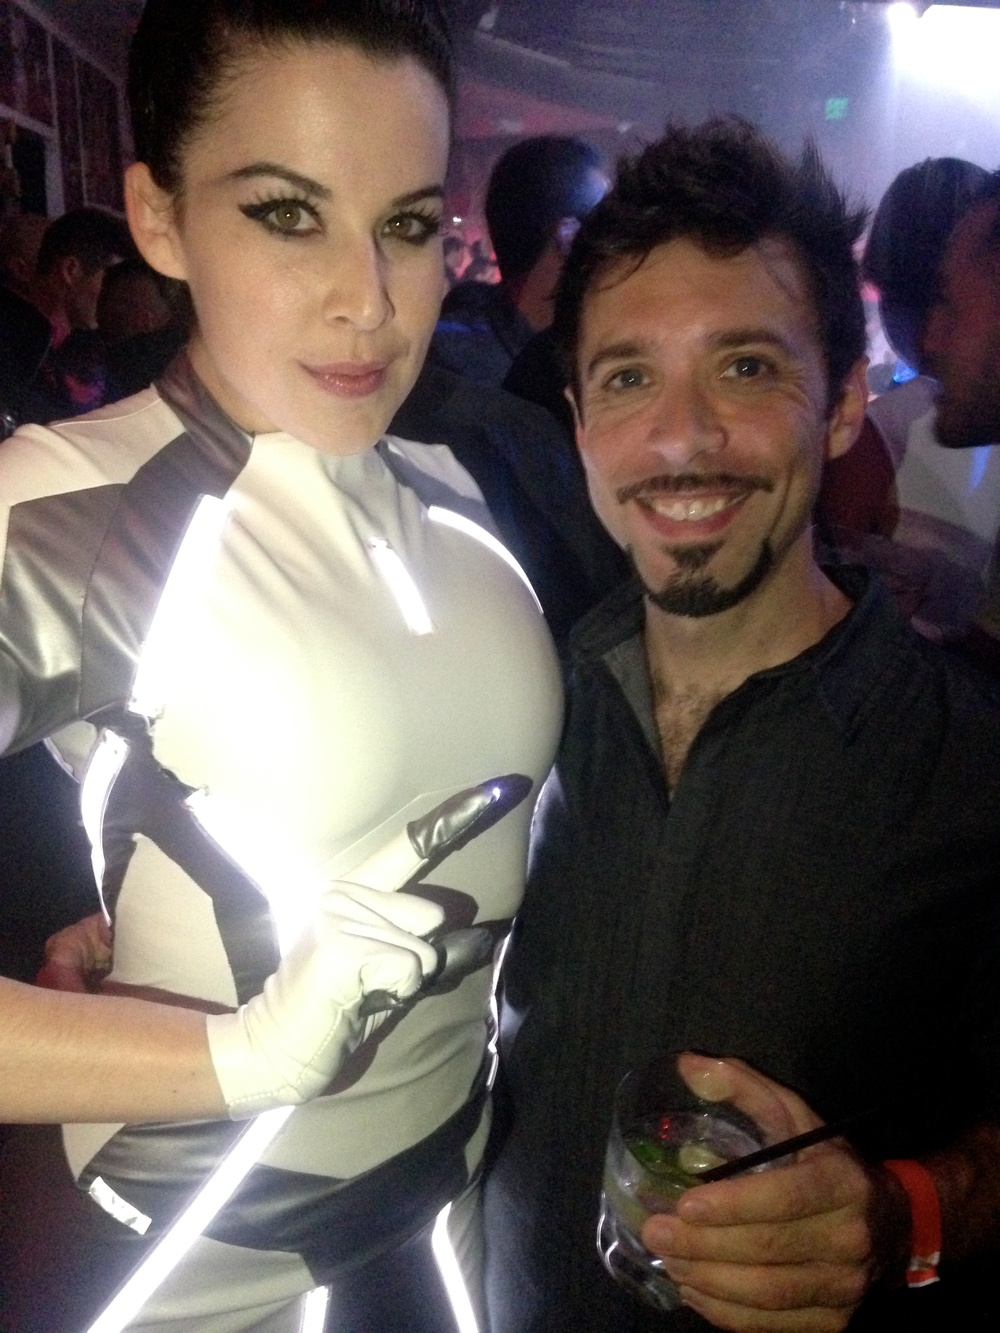 The fantastic Miss Kit Quinn in her Siren from Tron cosplay with Adam Beane.